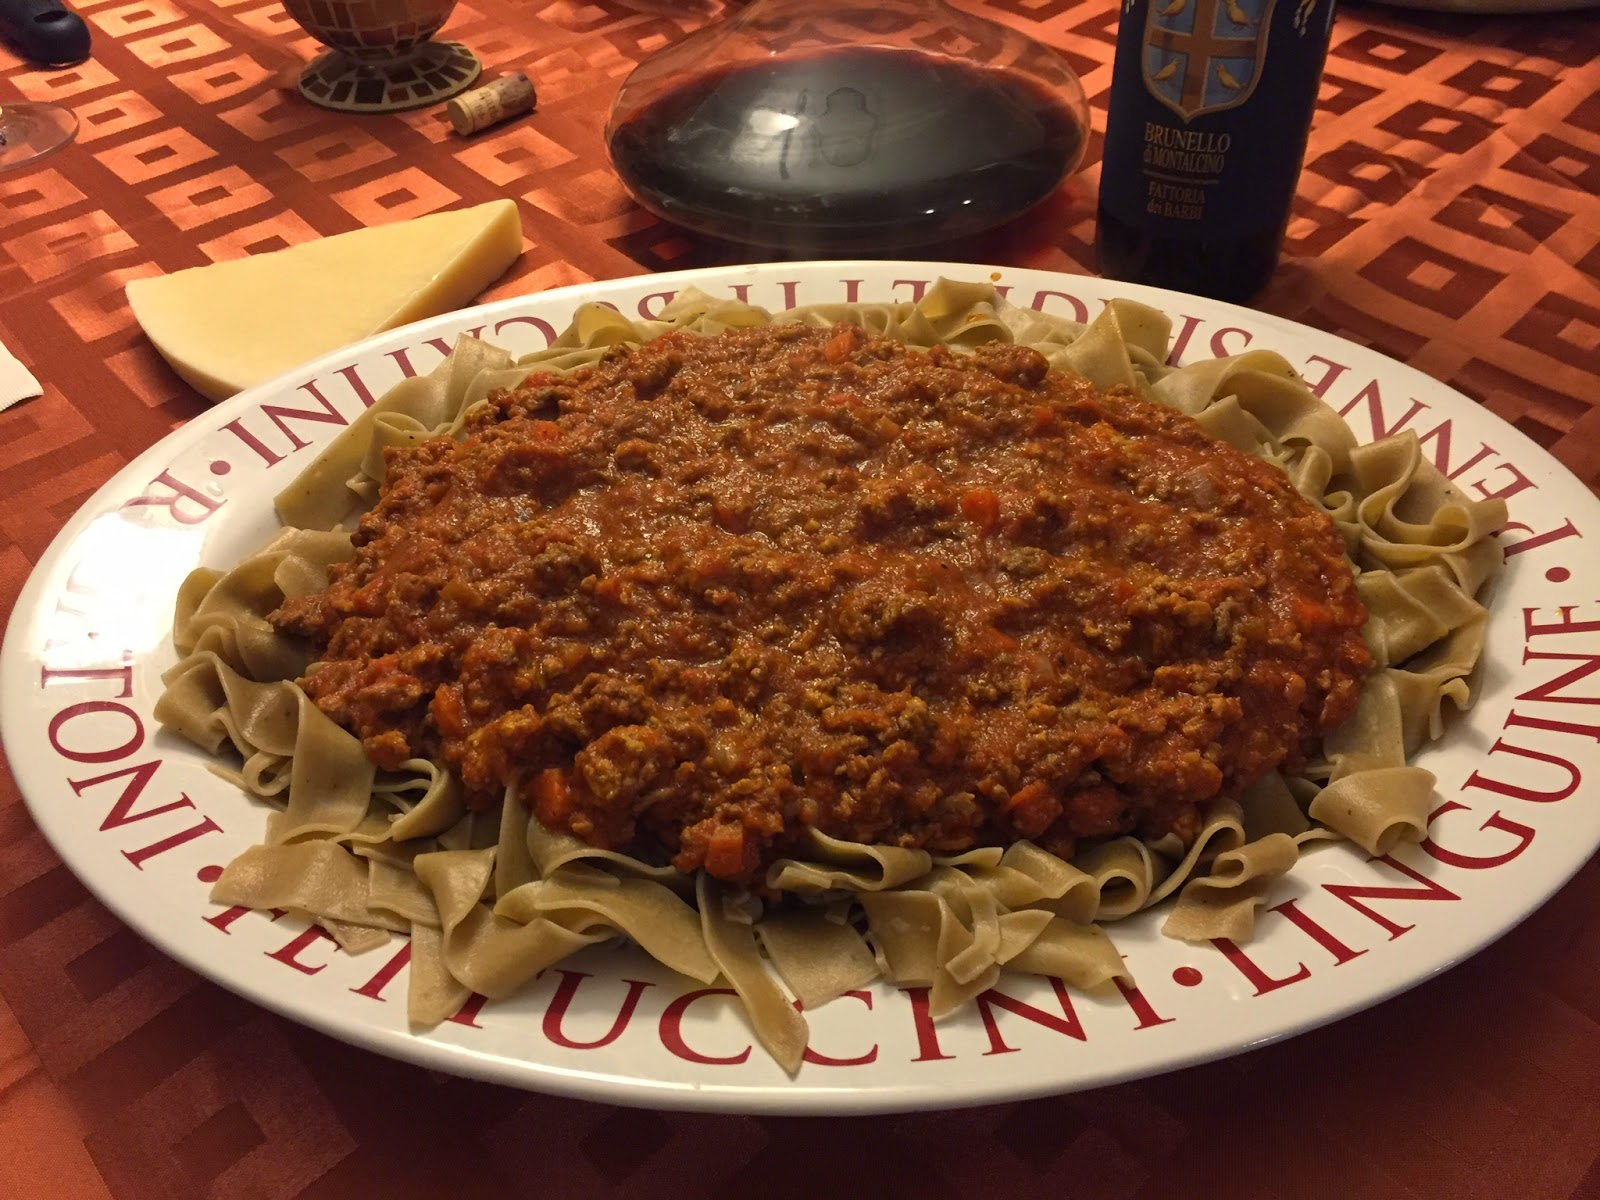 Pappardelle with bolognese and Brunello di Montalcino